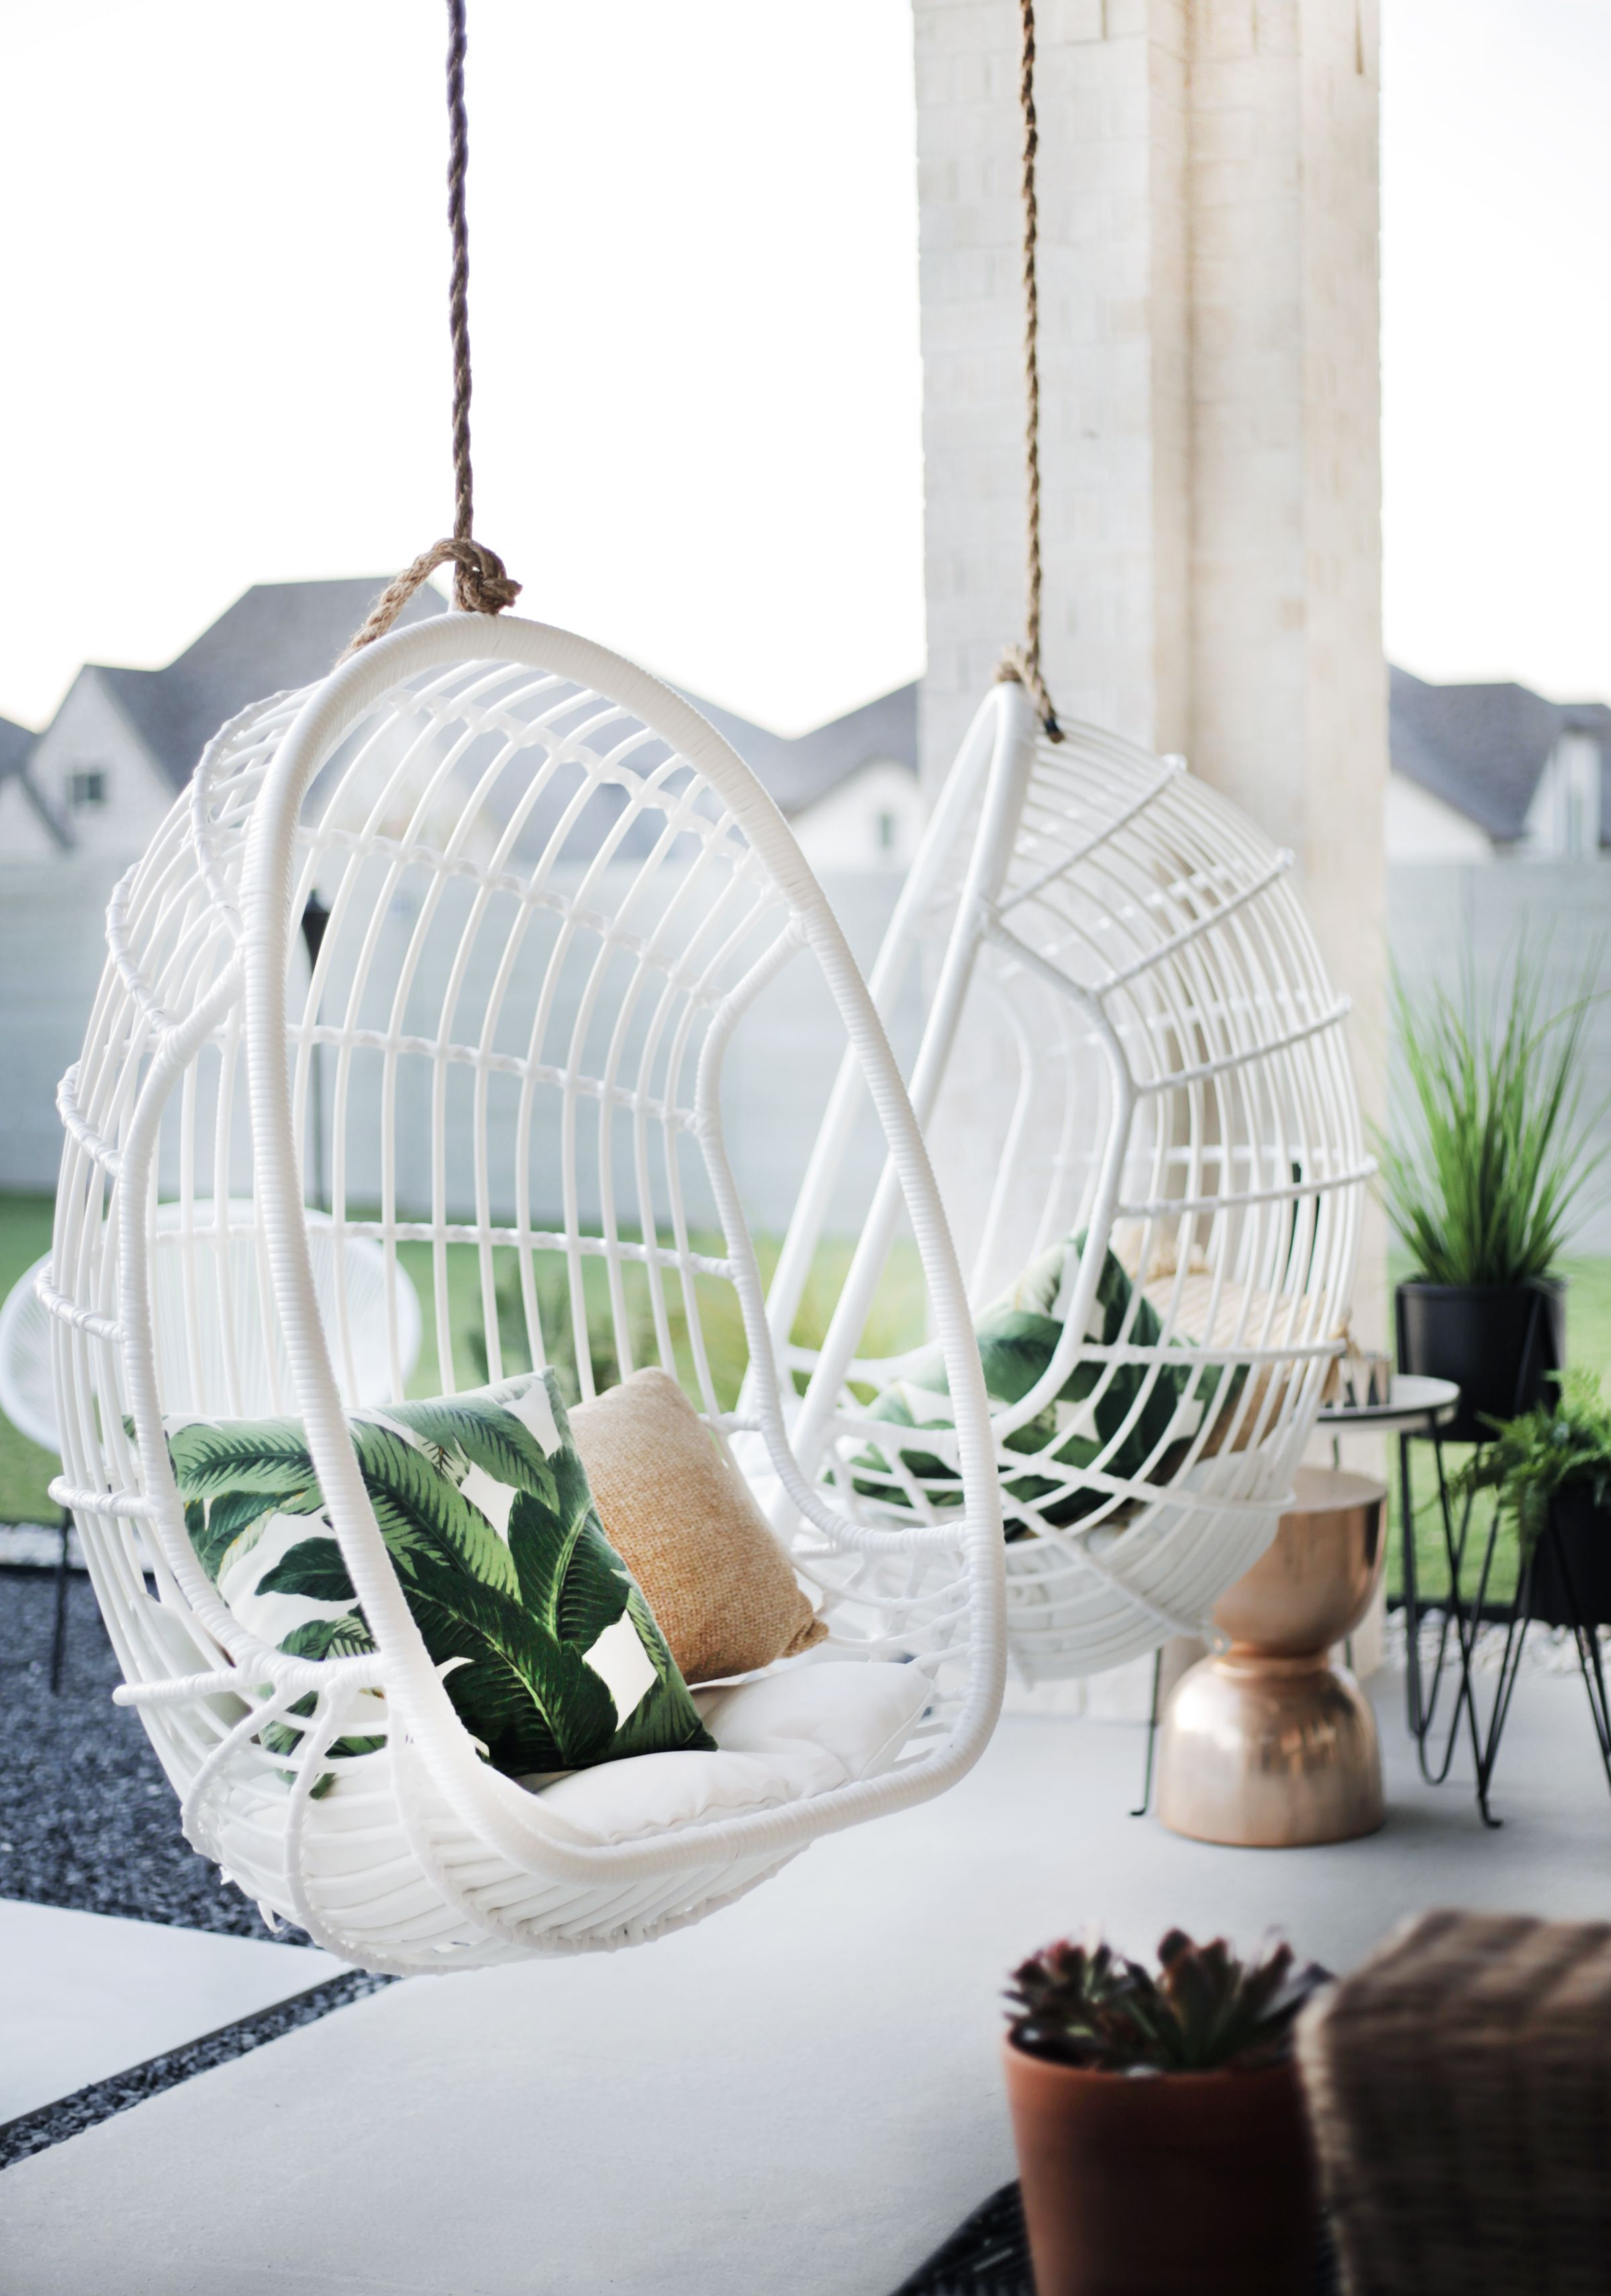 Knock off serena lily hanging chairs in 2020 hanging